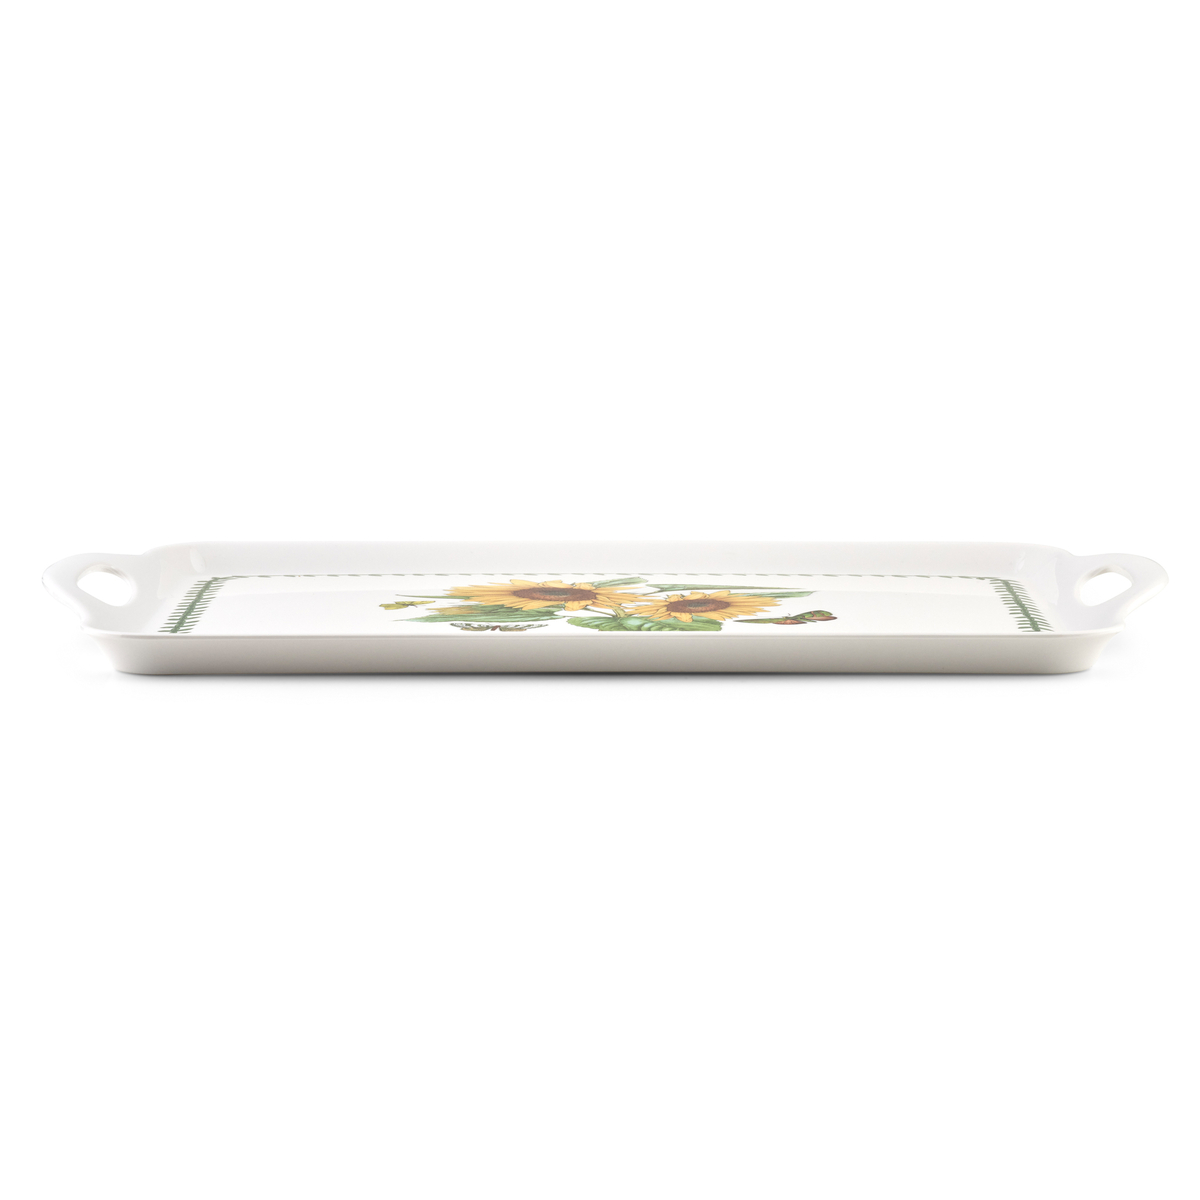 Pimpernel Botanic Garden Sunflower Large Melamine Handled Tray image number 2